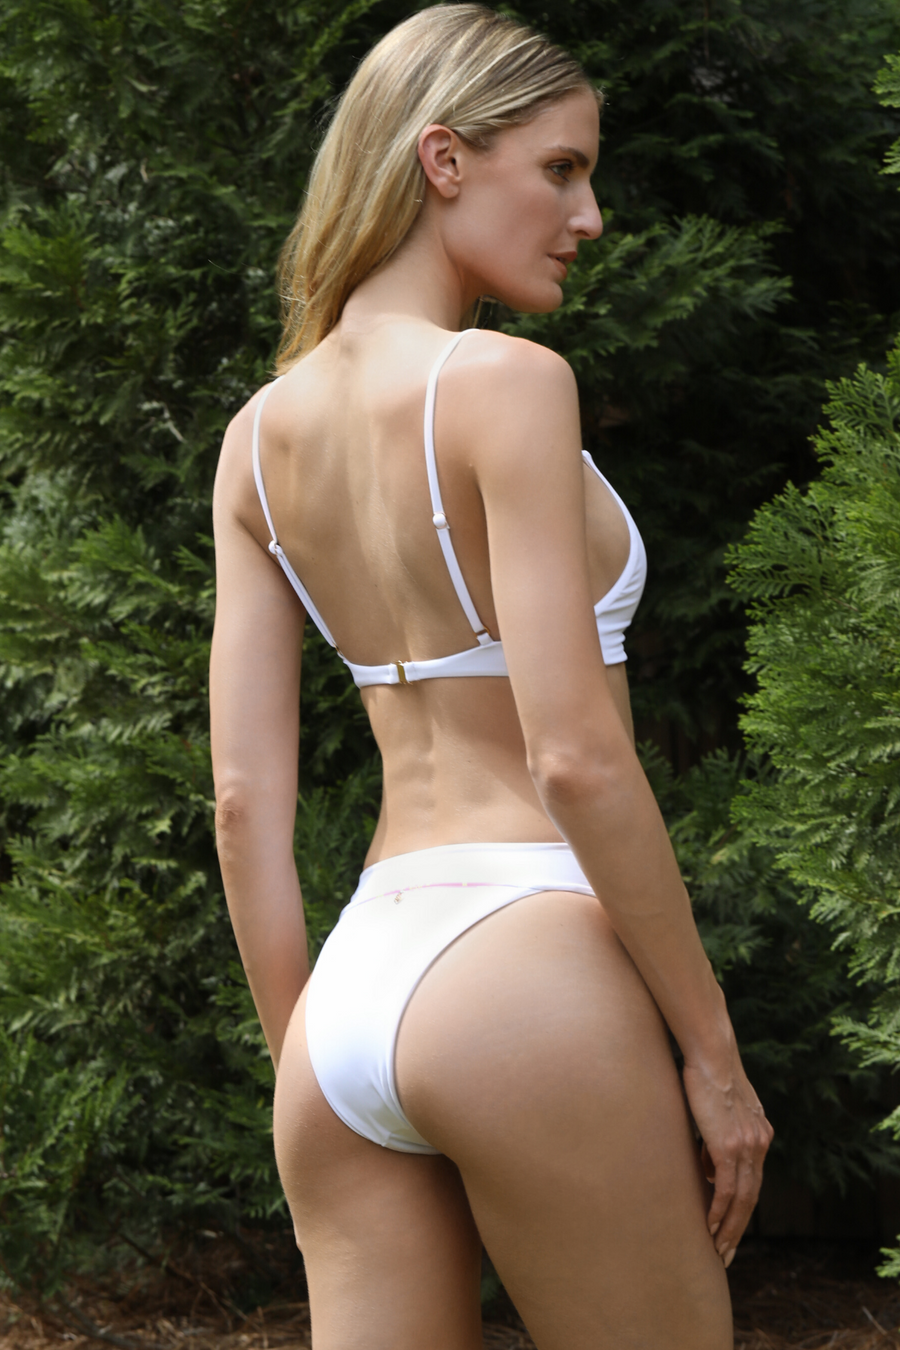 white triangle bikini top with loop. 2020 swimwear